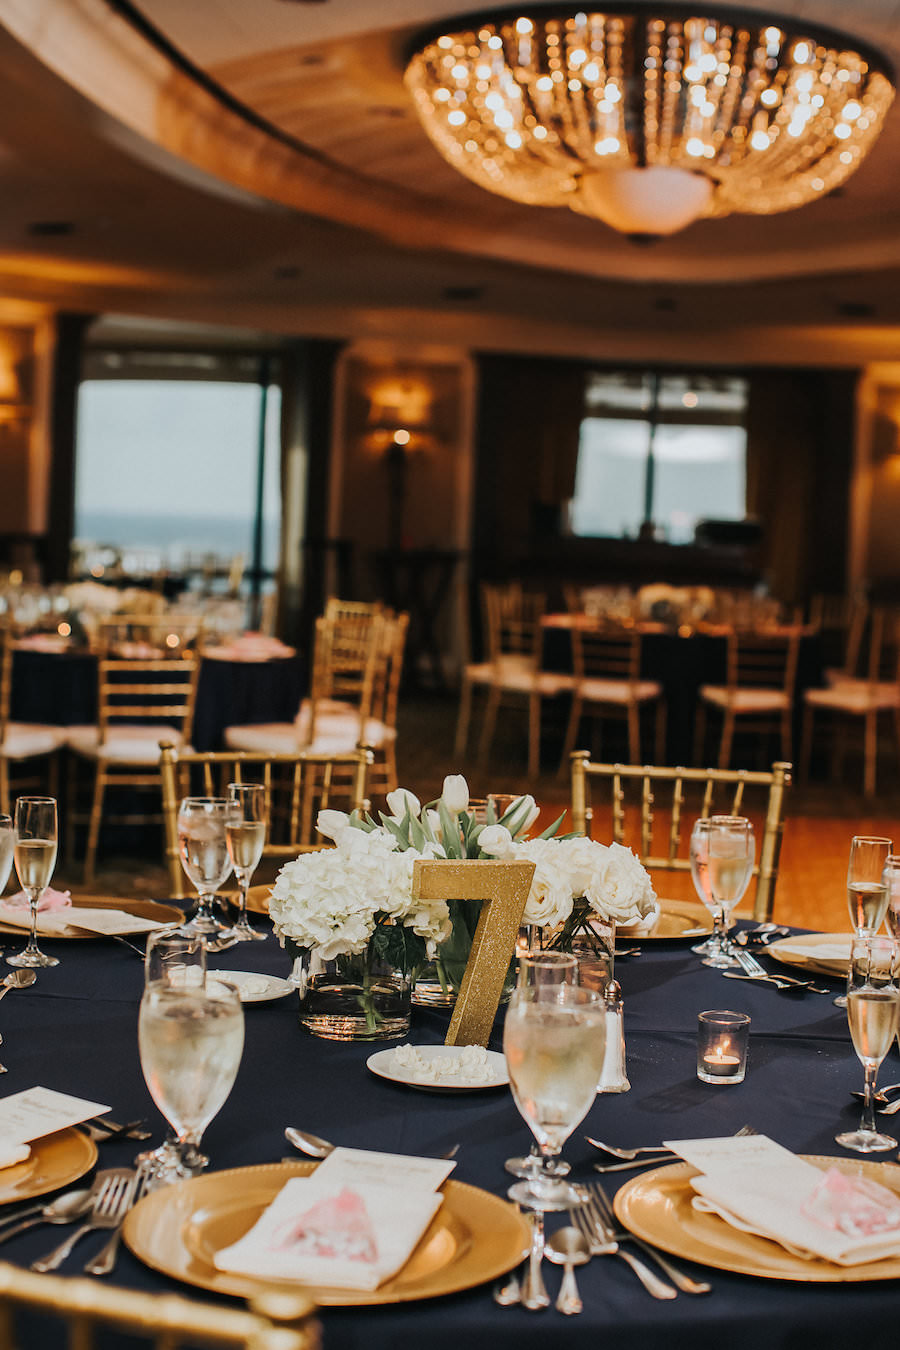 Elegant Gold Wedding Reception with Navy Blue Linens and Gold Chiavari Chairs, Beaded Charger Plates, Low White Tulip Centerpieces and Gold Glitter Table Numbers | Wedding Reception Decor Inspiration and Ideas | Downtown Tampa Wedding Reception Venue The Tampa Club